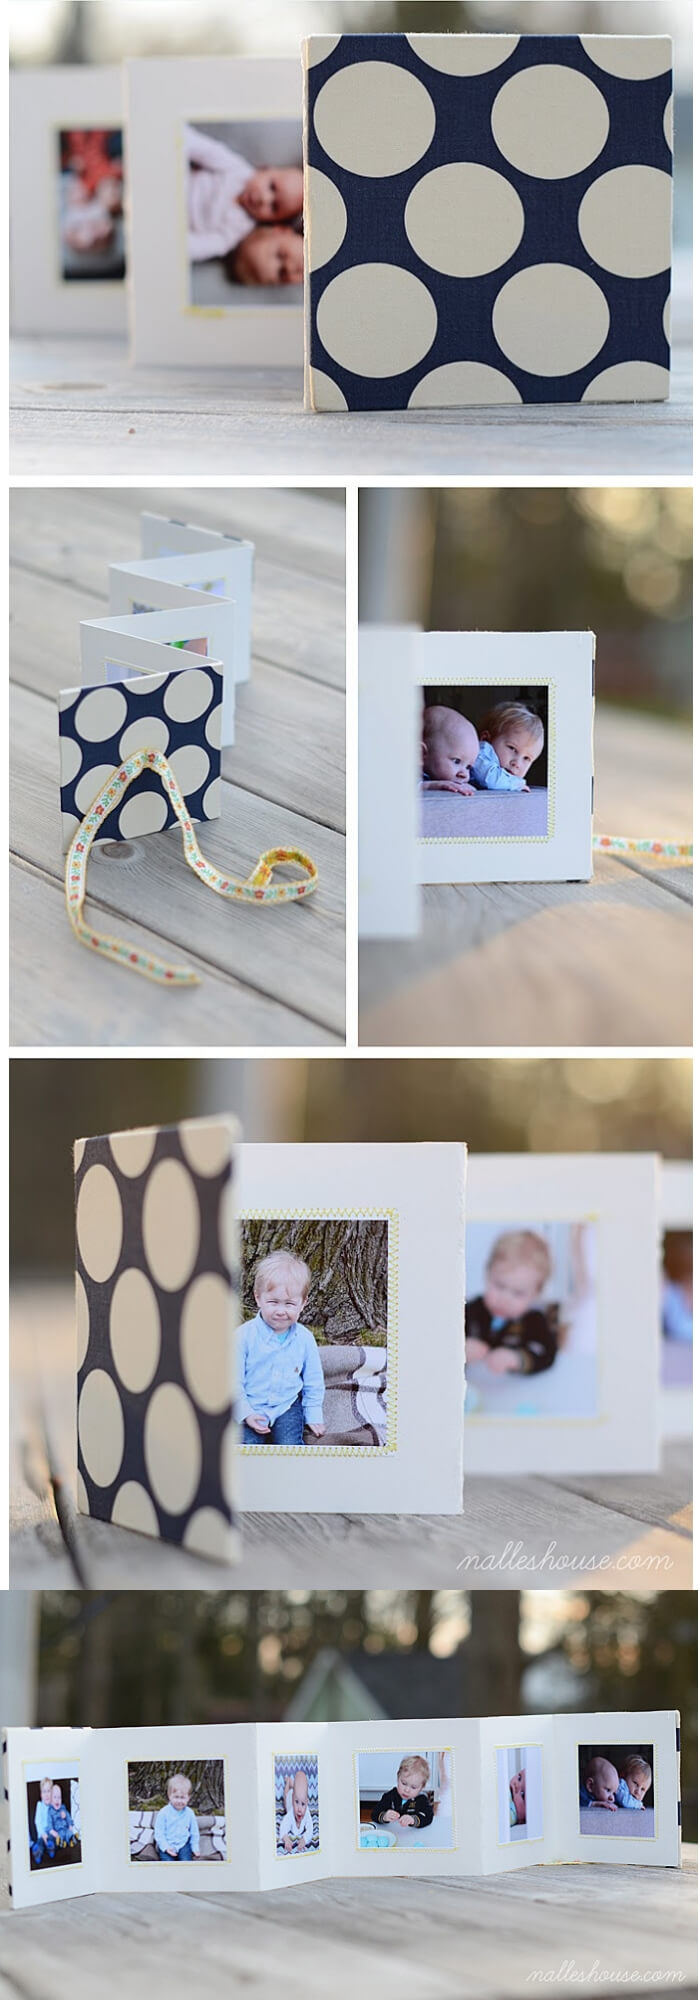 DIY Brag Book | Christmas Gifts for Grandparents: Creative Holiday Ideas for Grandma and Grandpa